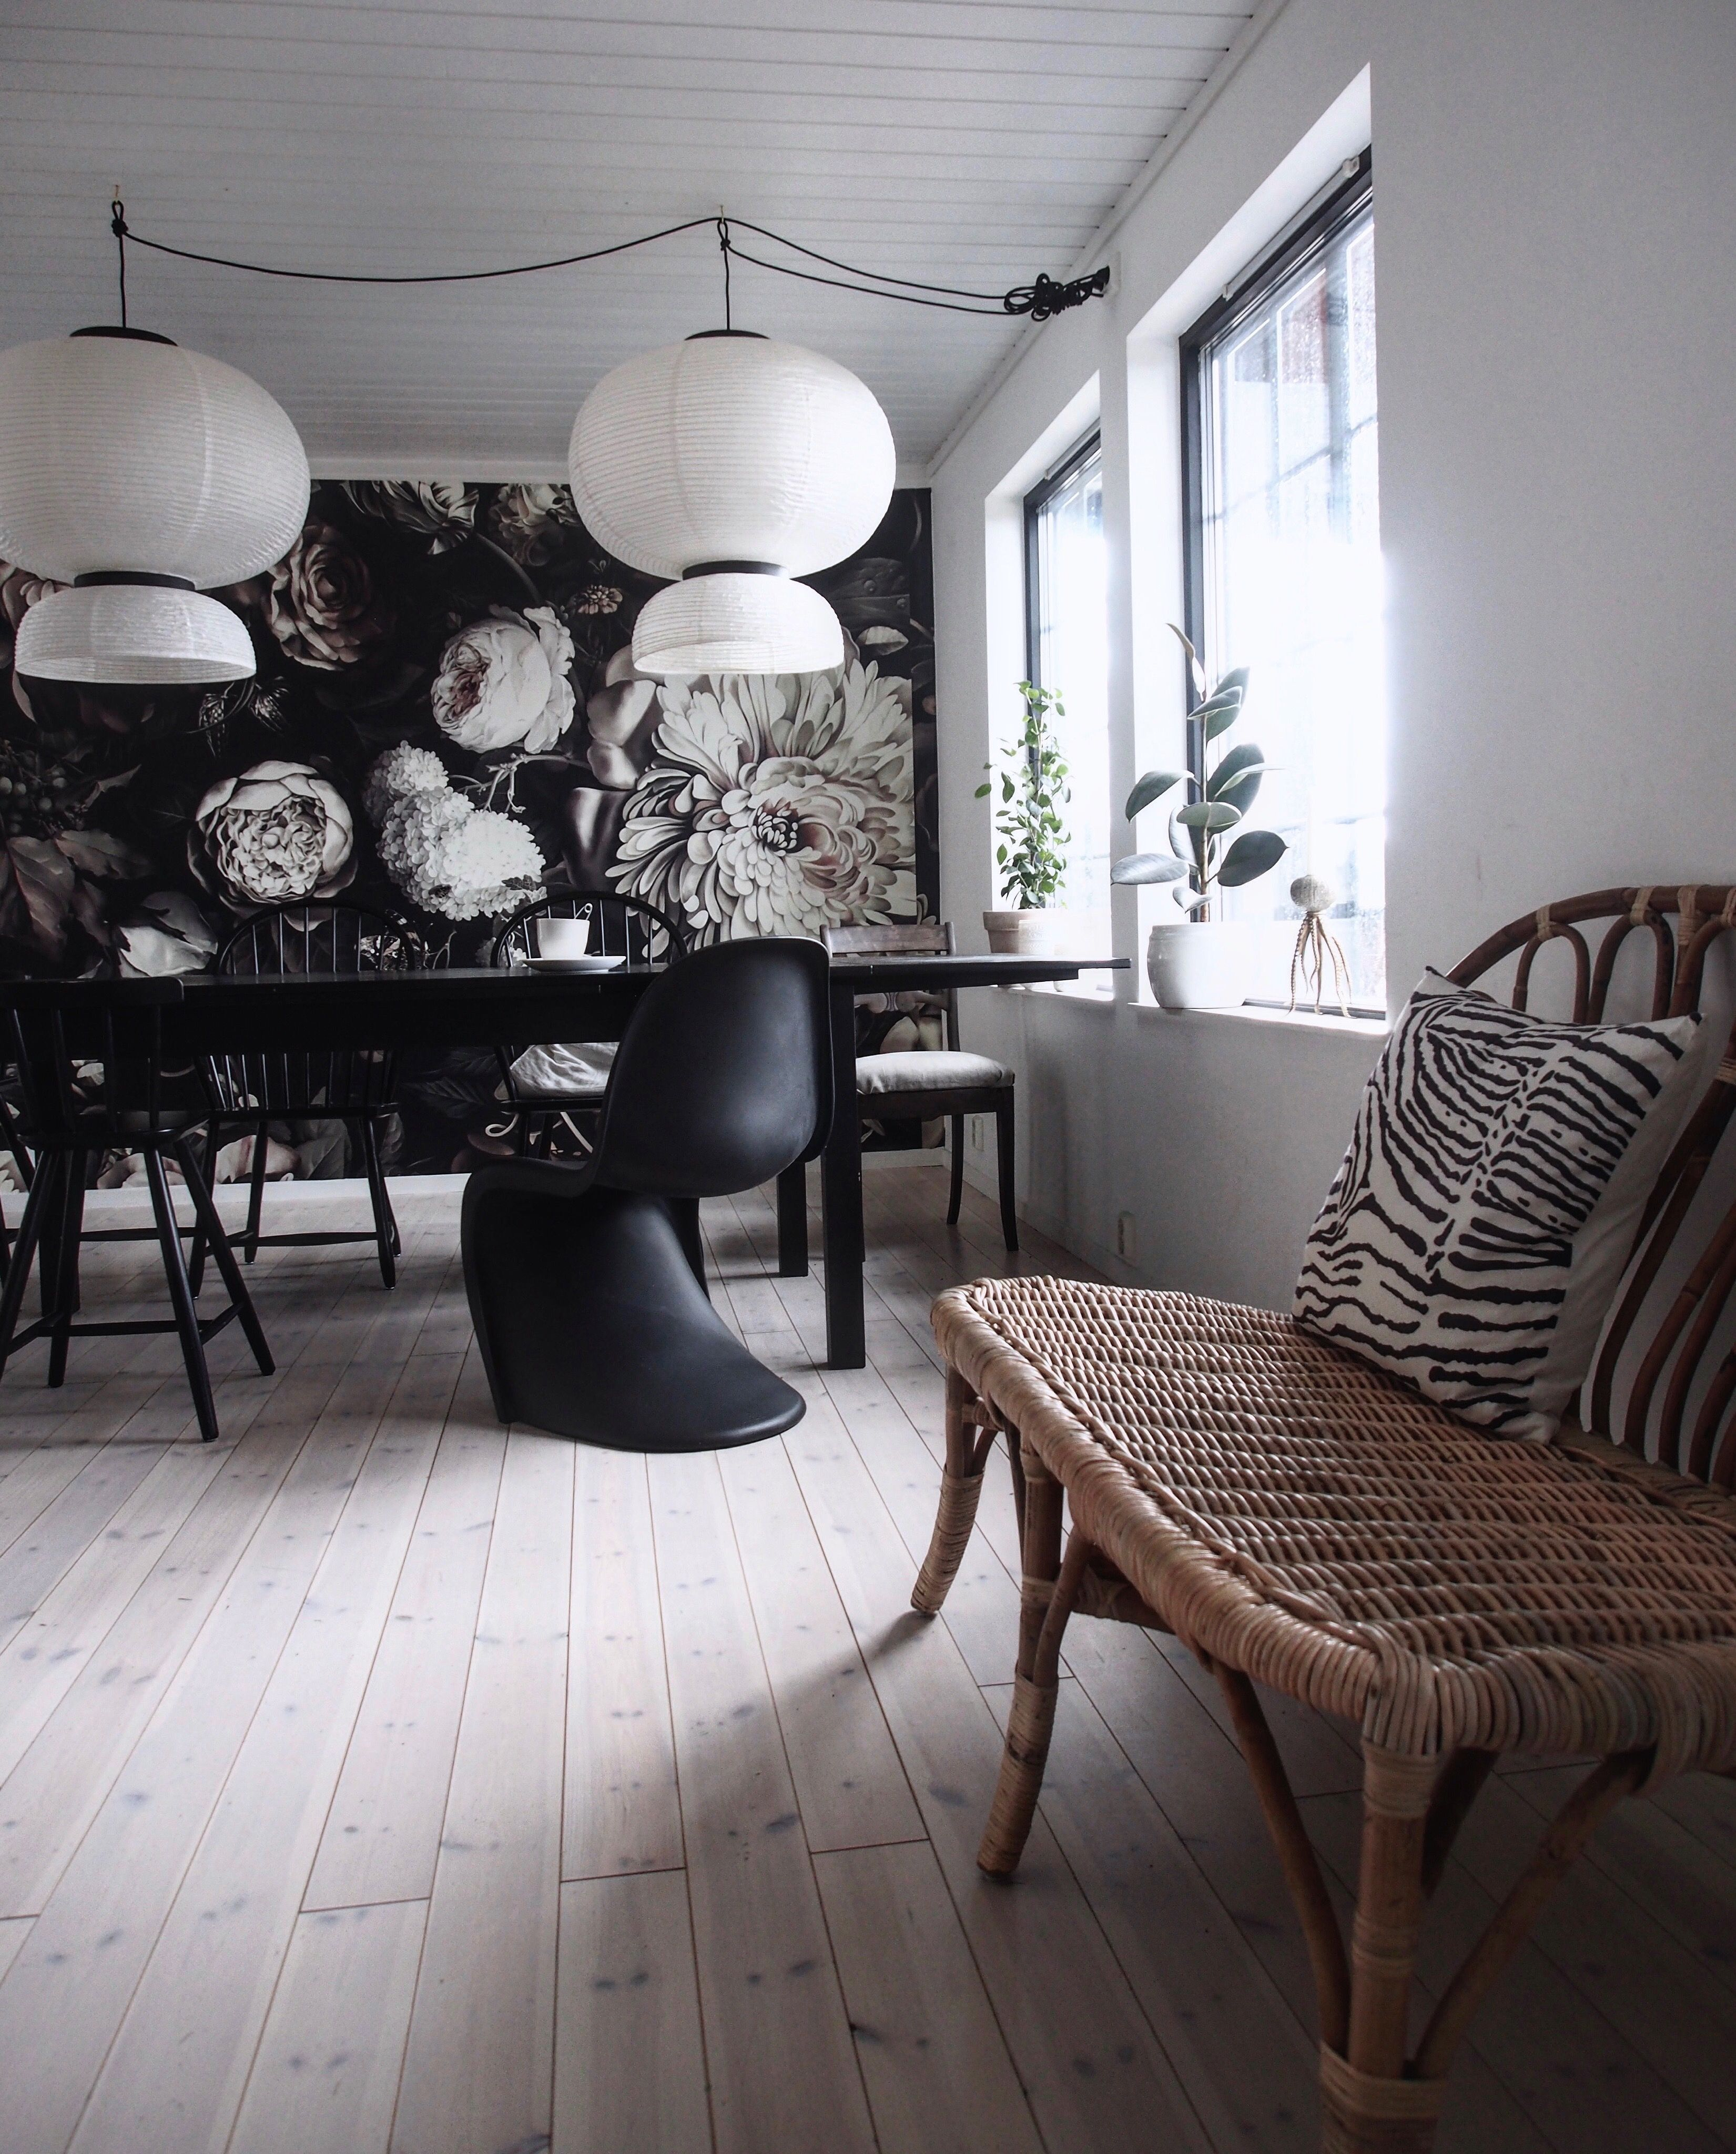 Black floral print wallpaper dark floral wallpaper by ellie cashman - Diningroom By Eclecticdecoration Tradition Lamps Verner Panton Chair And Jassa Bench From Panton Chairdining Nookellie Cashman Wallpaperfloral